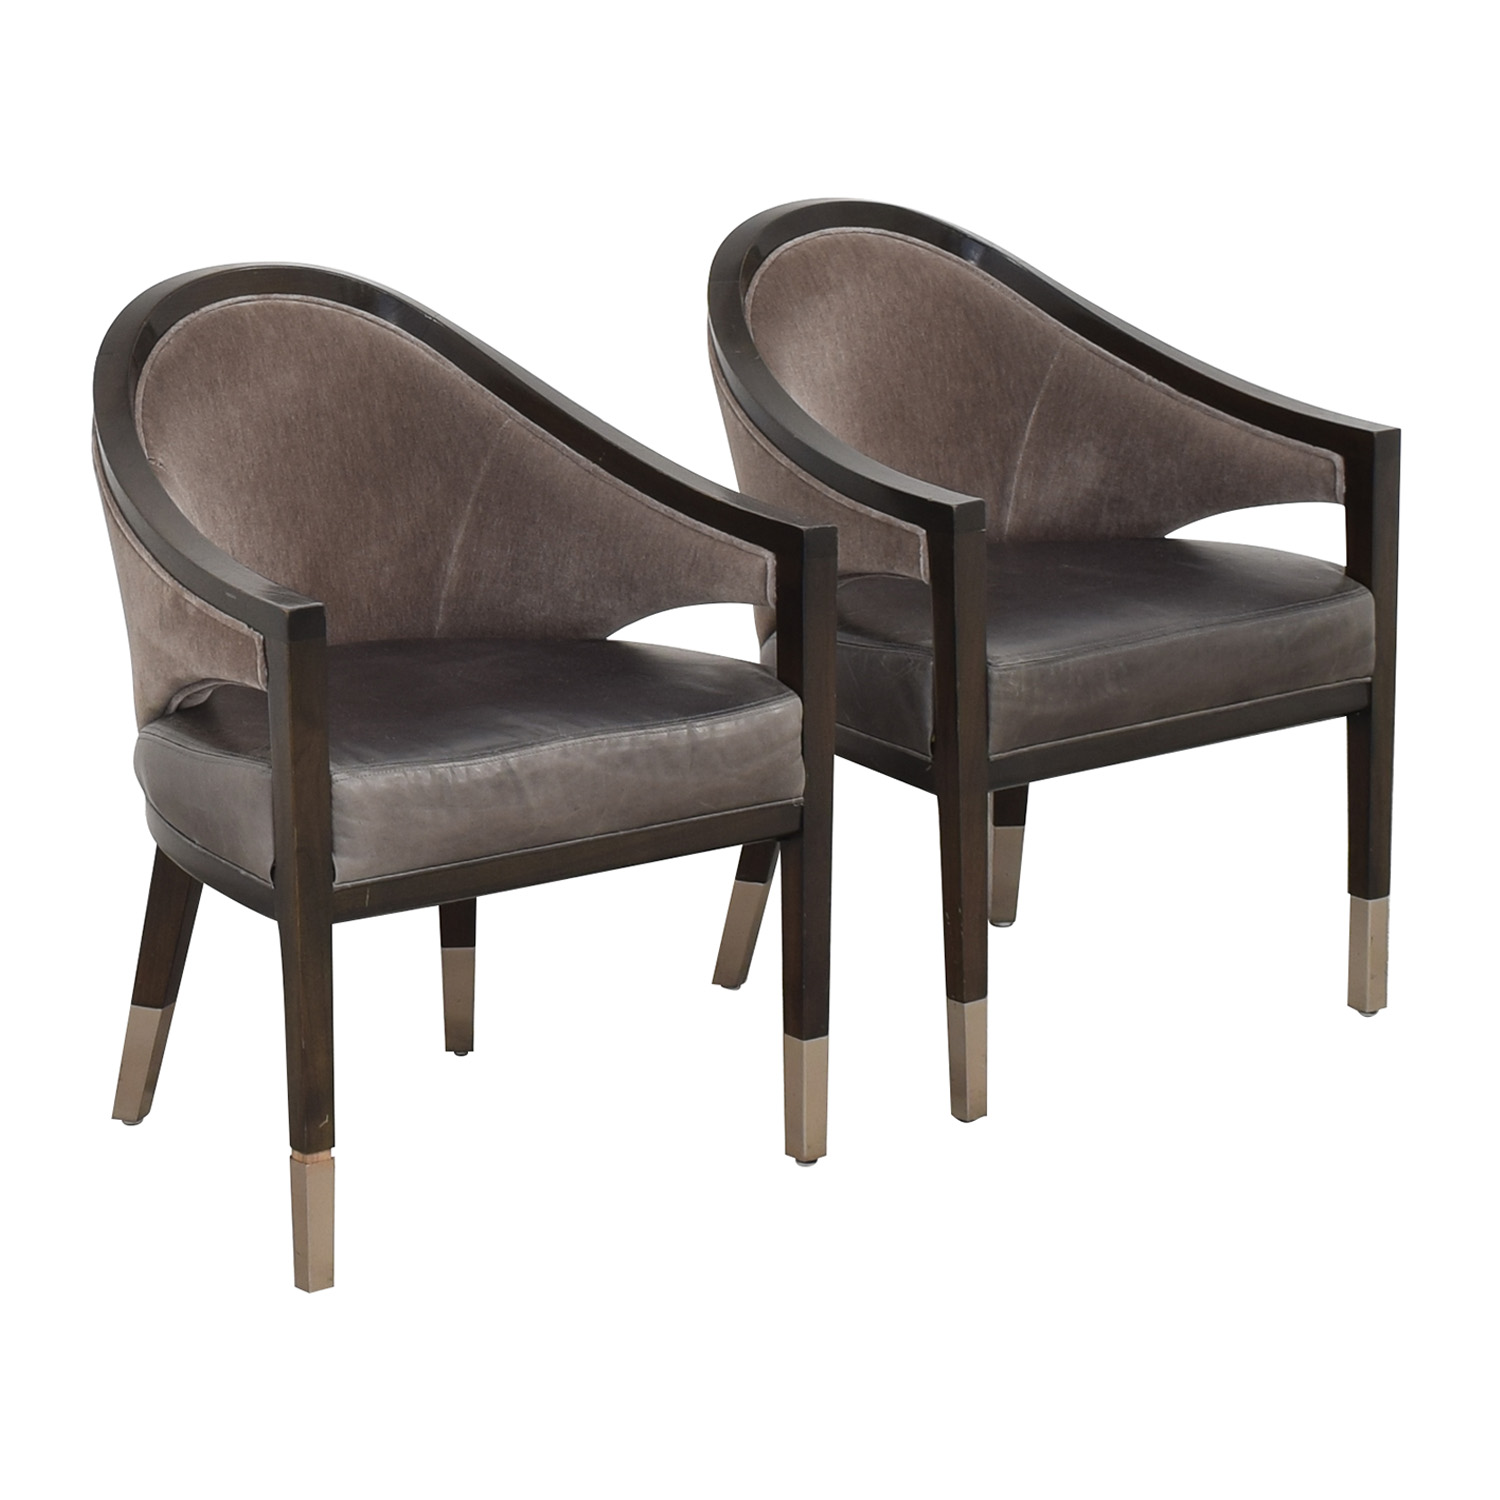 shop Allied Works Eleven Madison Park Dining Room Chairs Allied Form Works